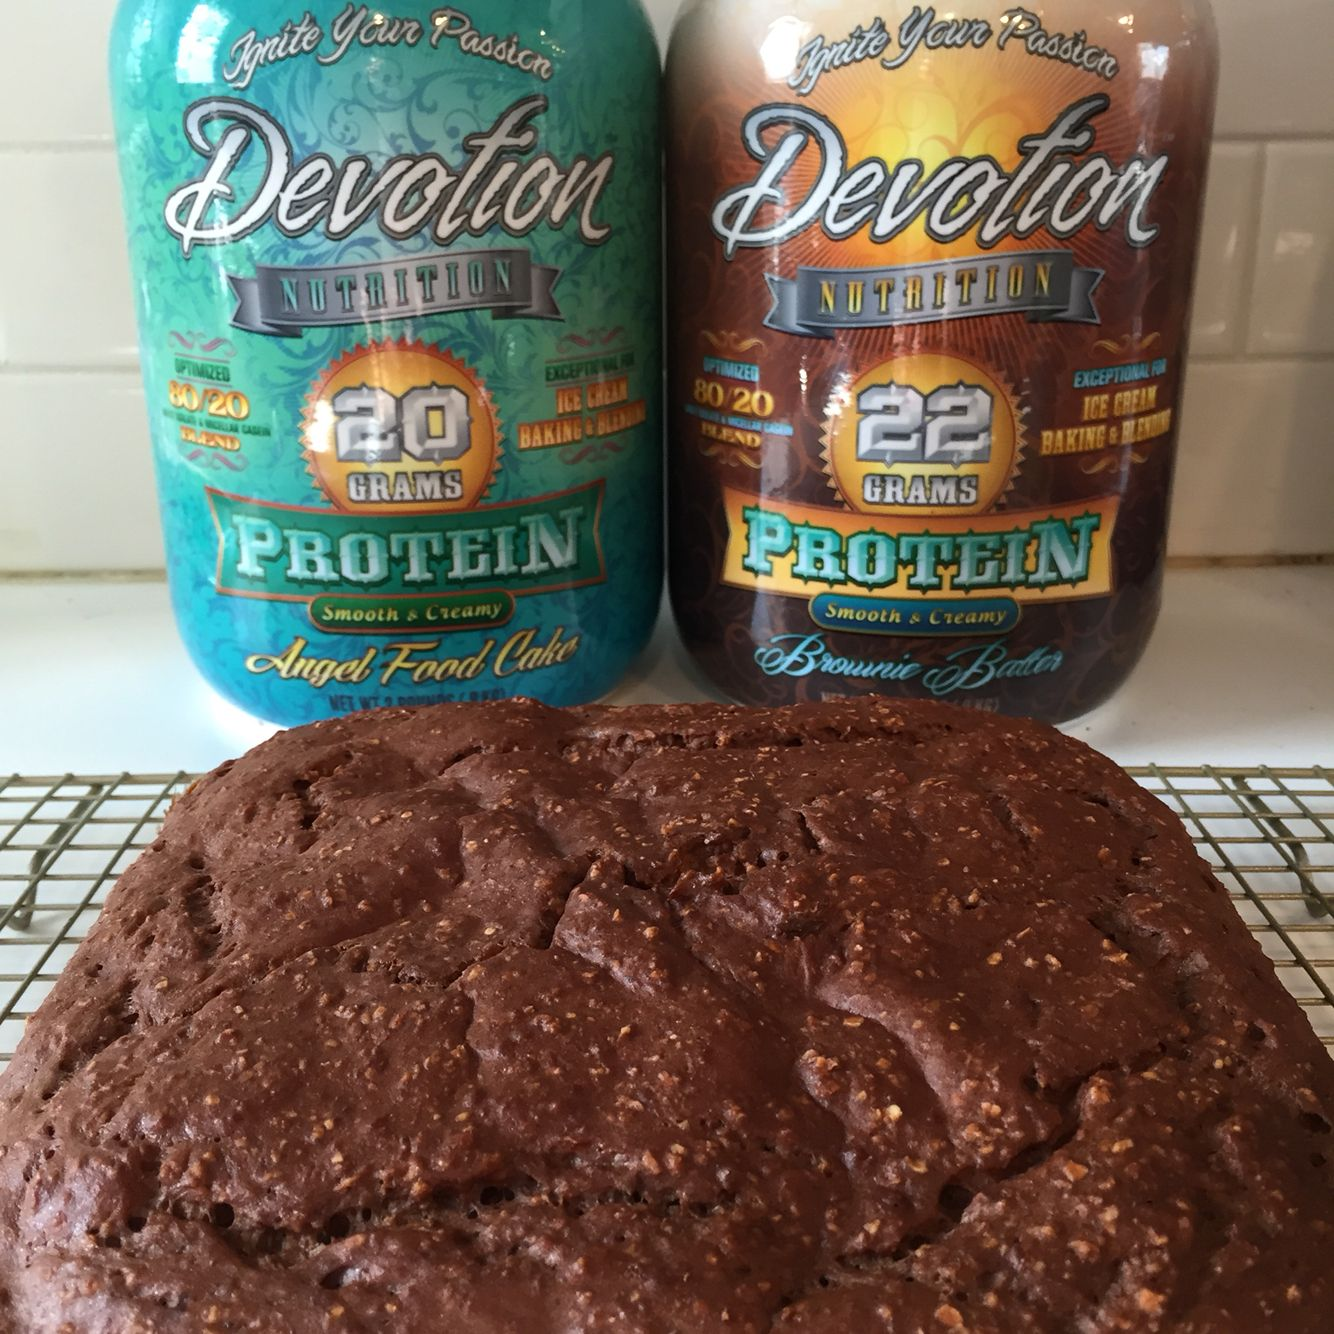 Protein Brownies Recipe 2 Scoops Devotion Brownie Batter 2 Scoops Devotion Angel Food Cake 1 C Oat Bran 8 Tbs Protein Powder Recipes Nutrition Recipes Recipes